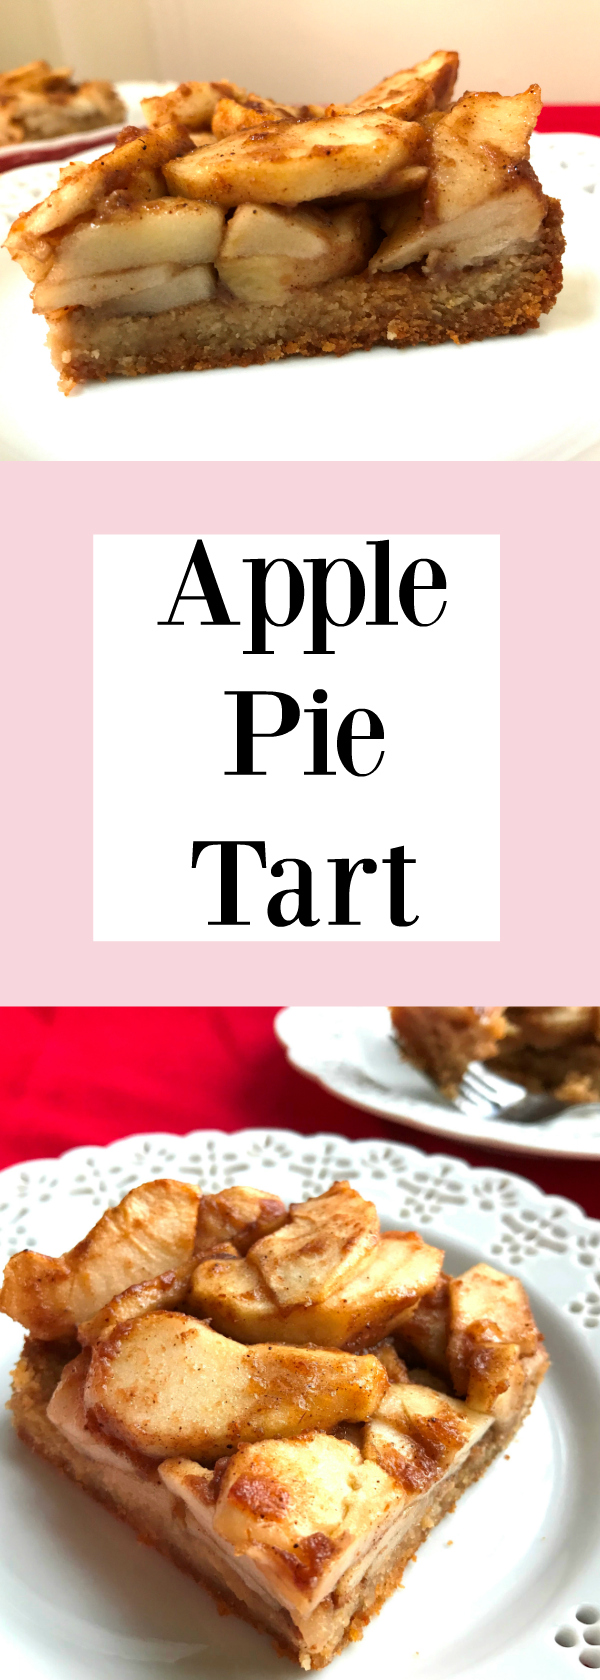 Apple Pie Tart Pin